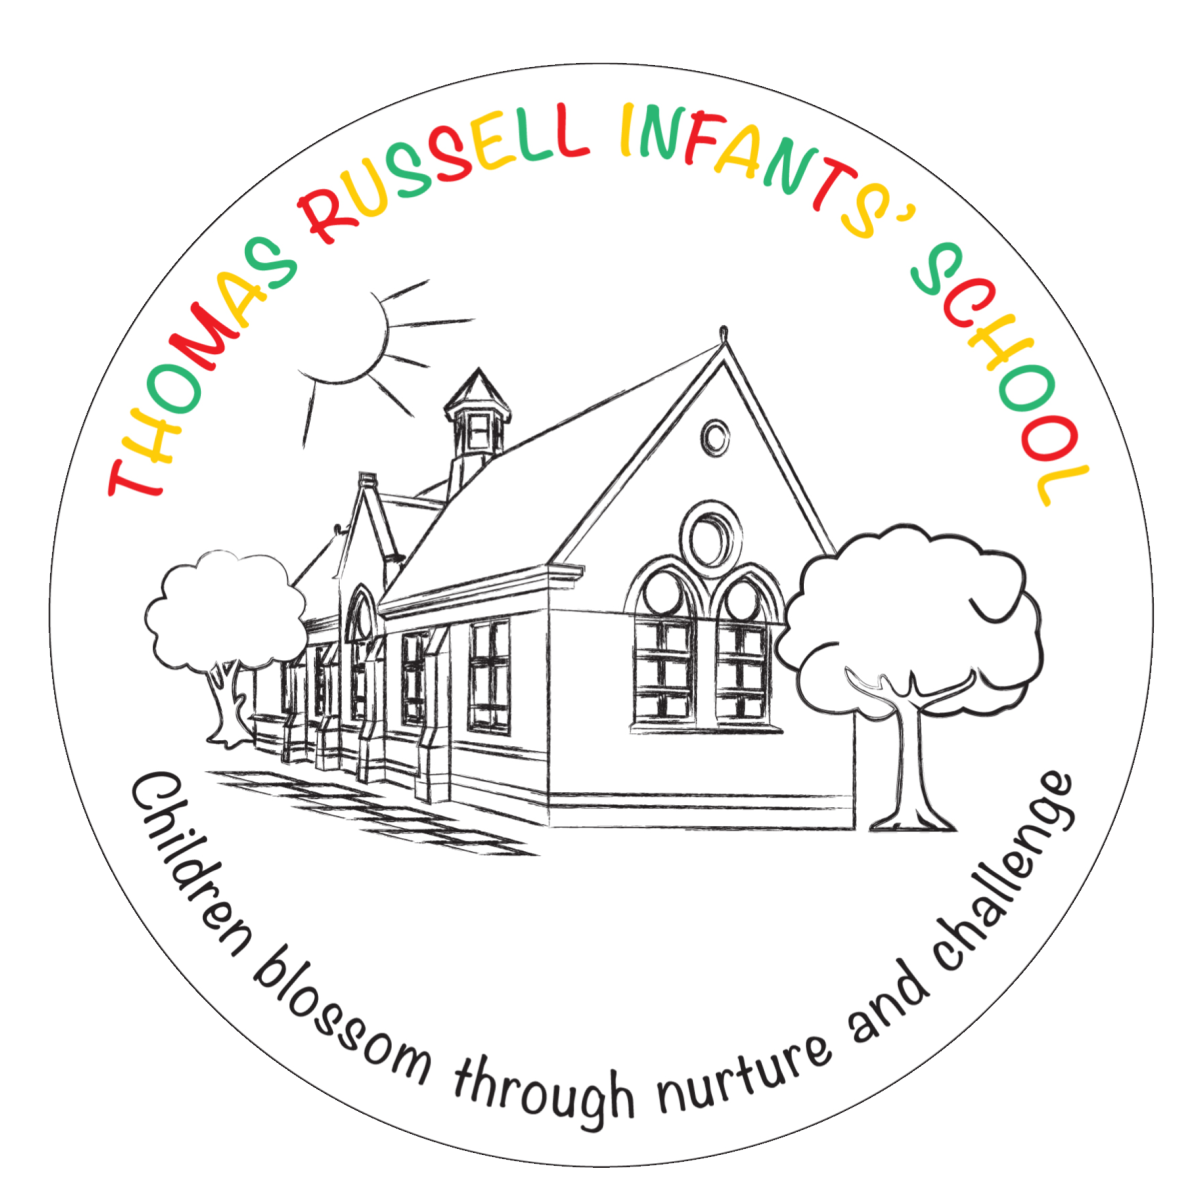 Thomas Russell Infants